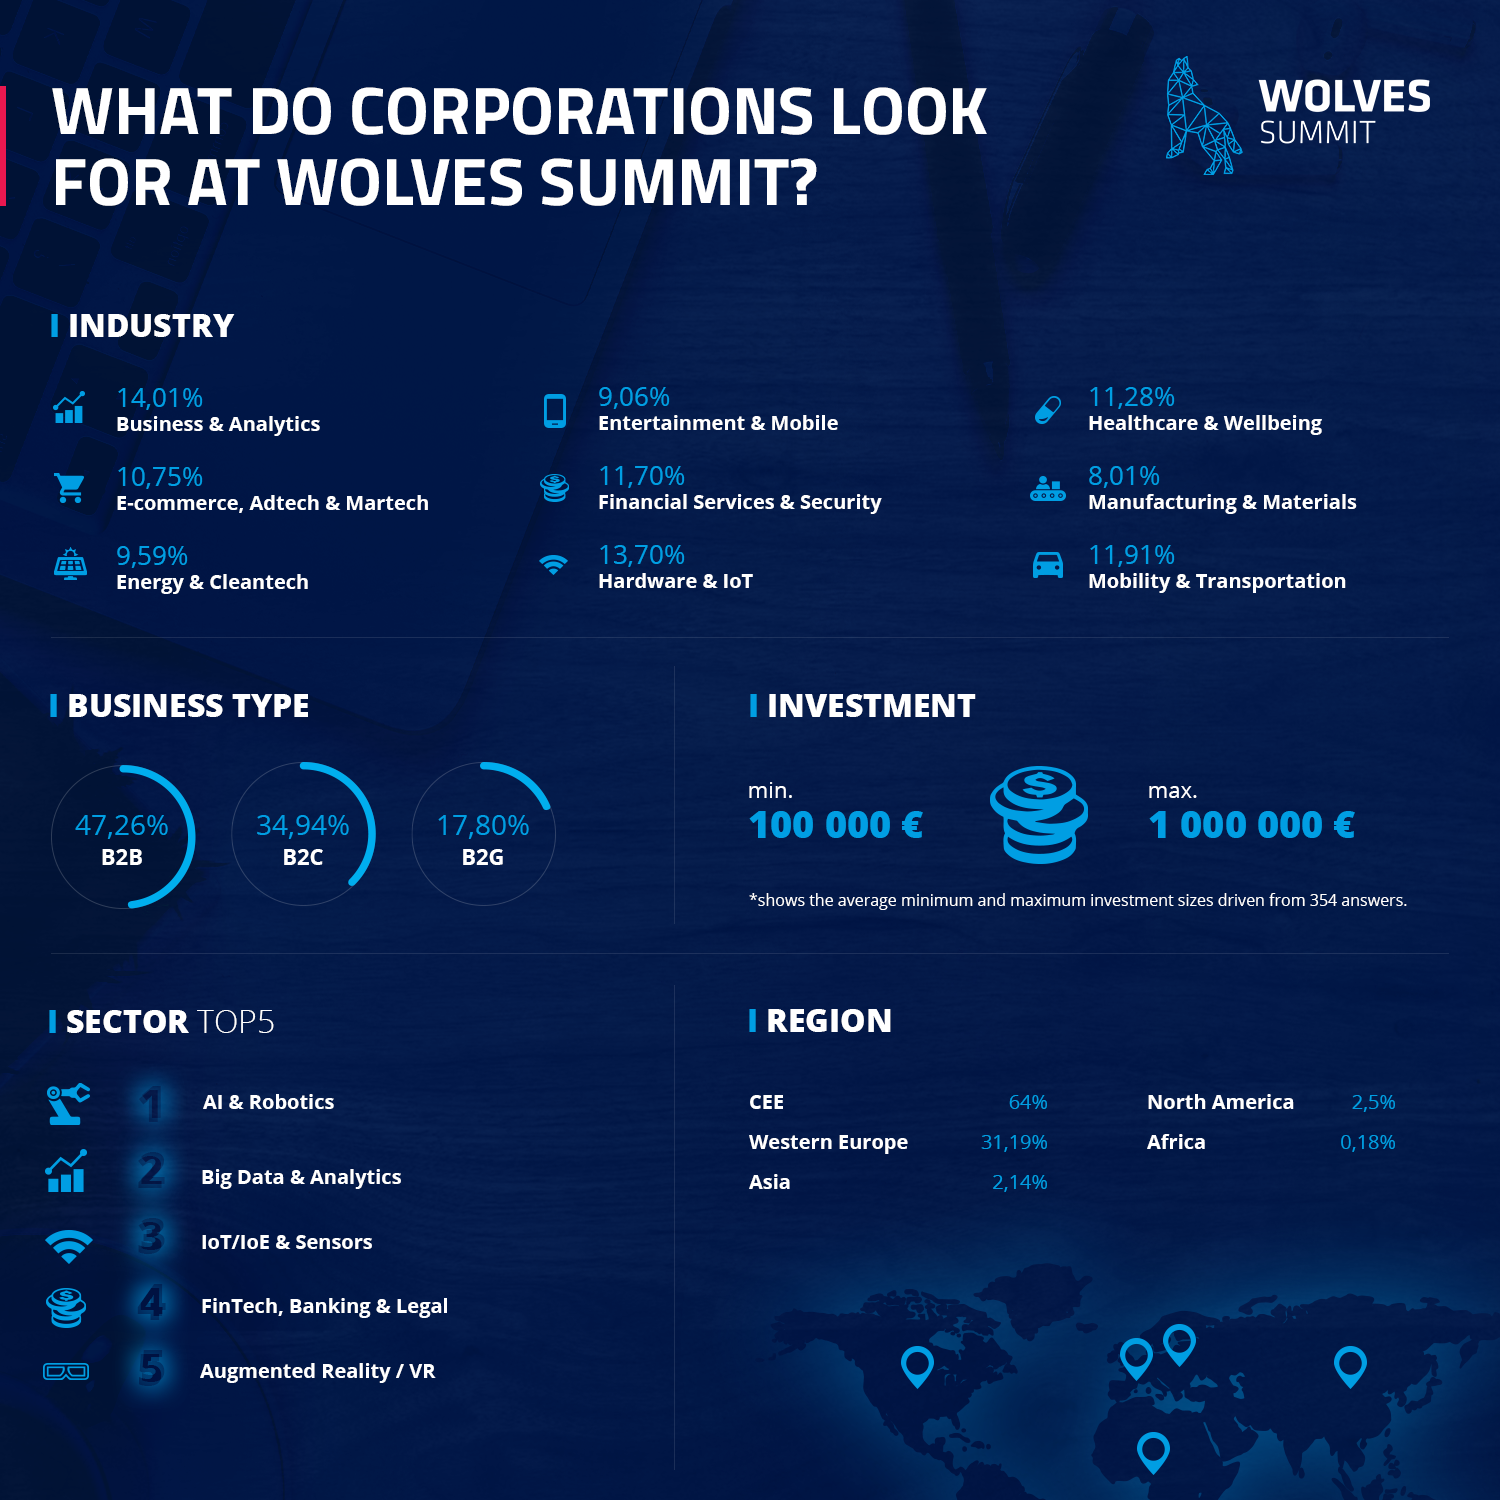 Wolves Summit Corporates